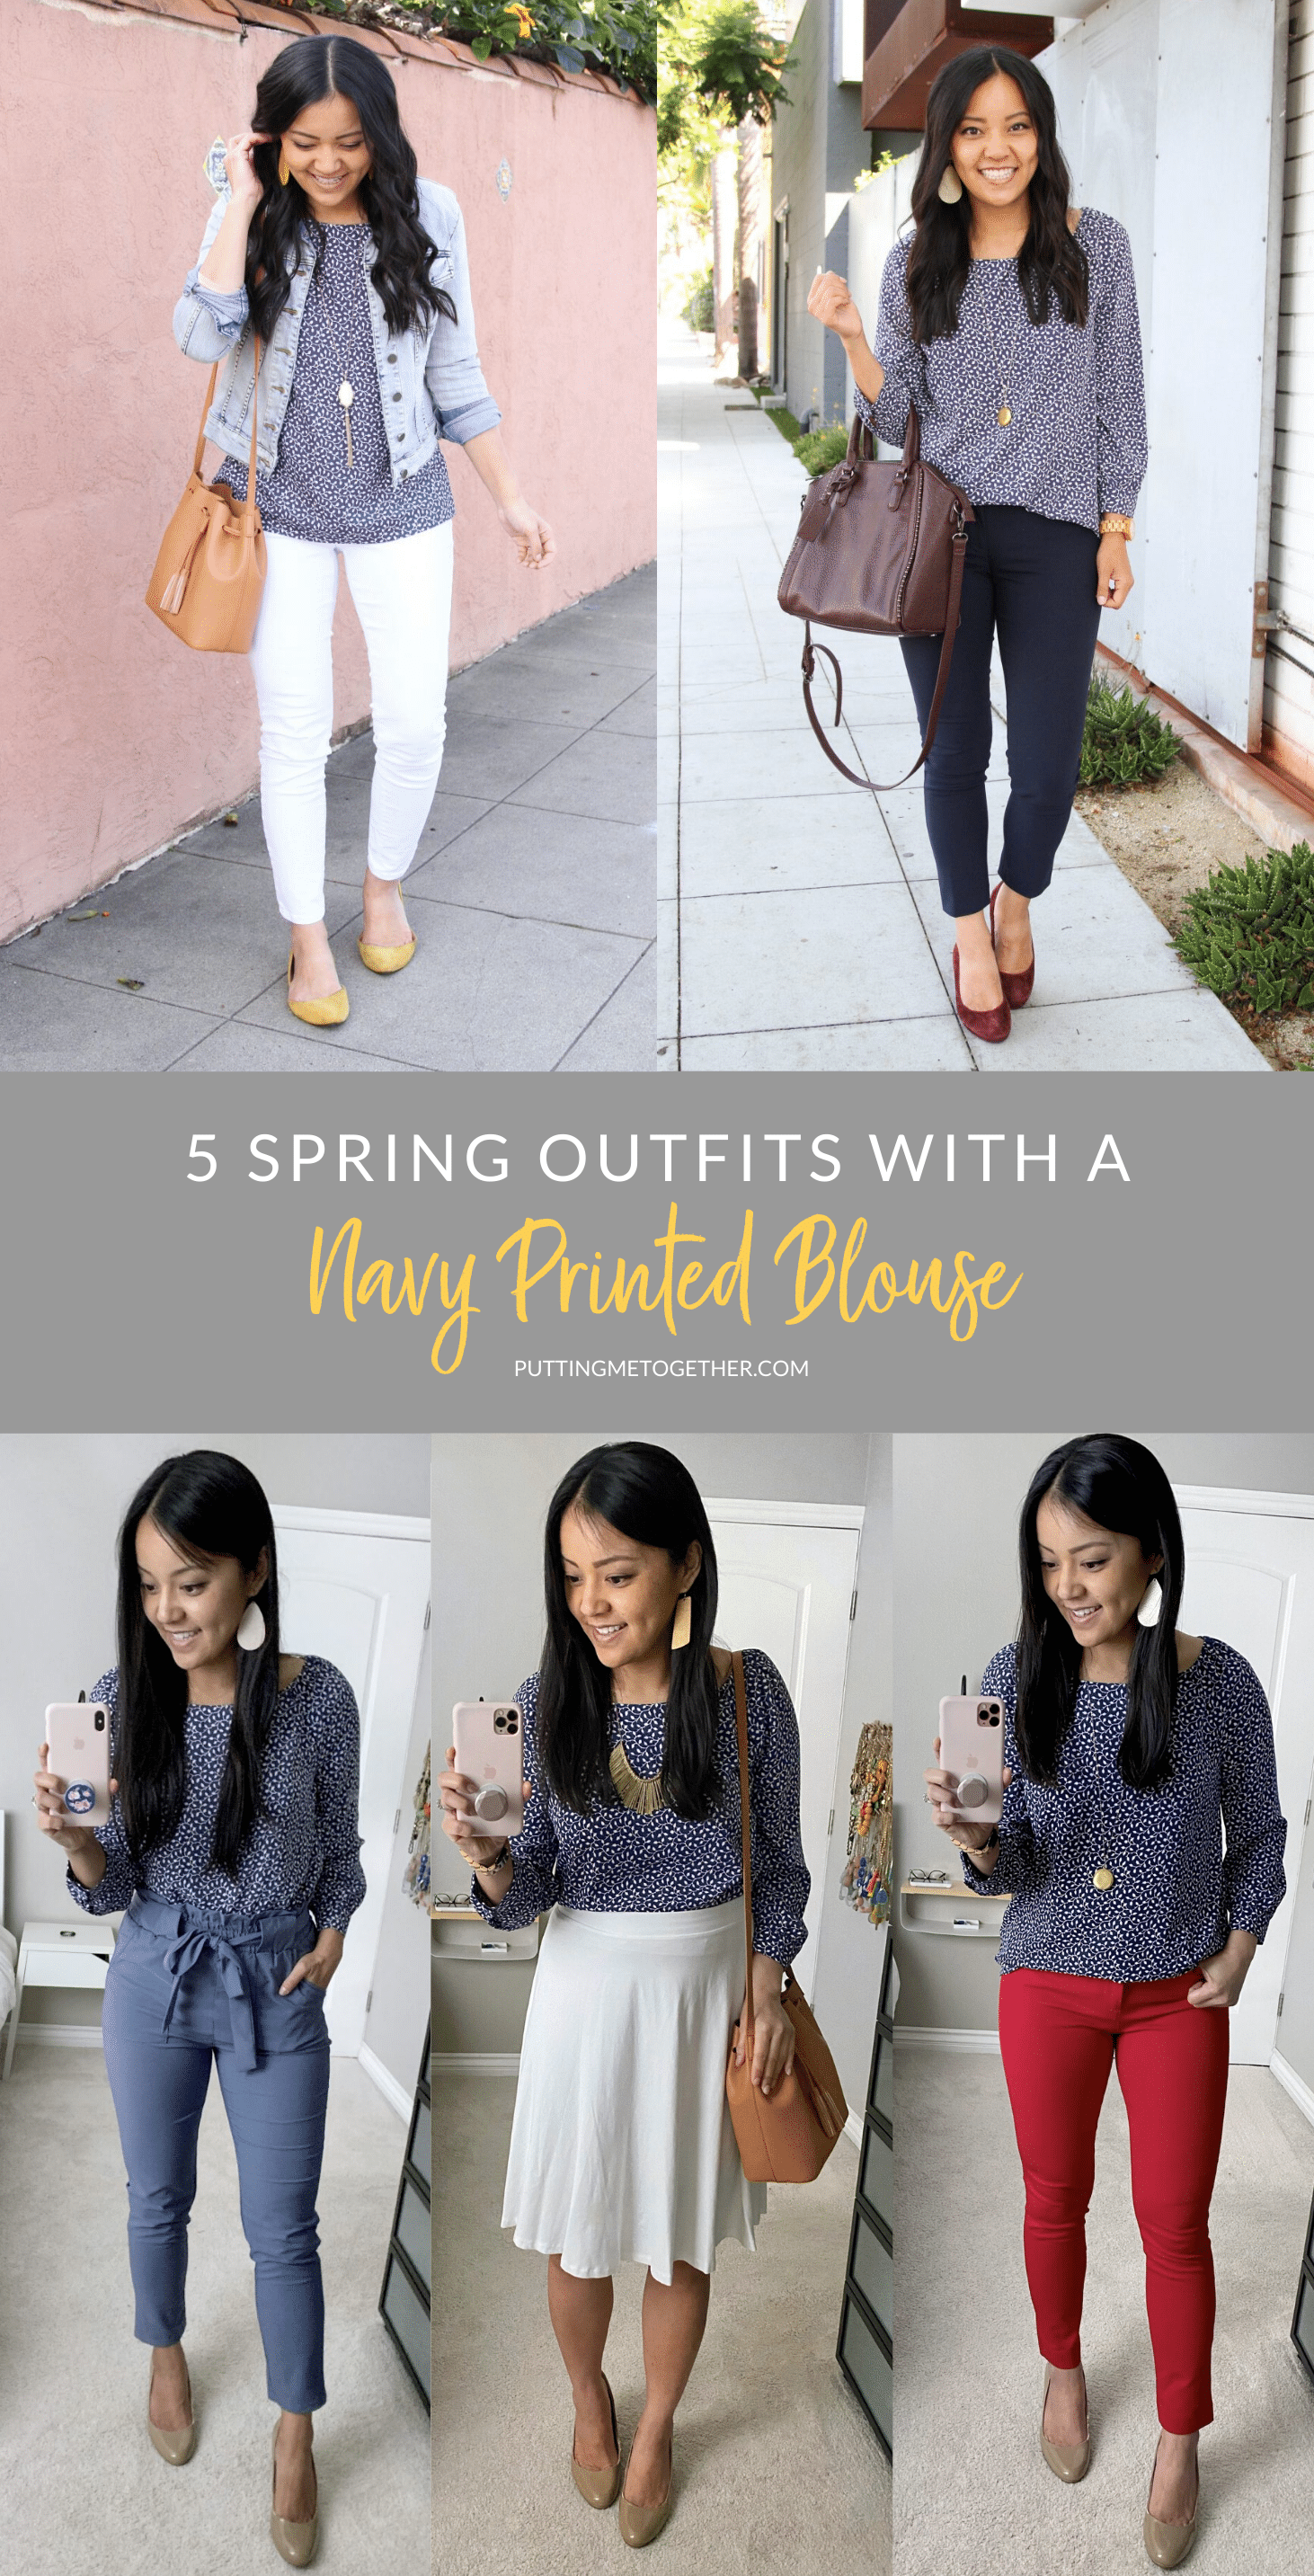 5 Spring outfits with a Navy Printed Blouse